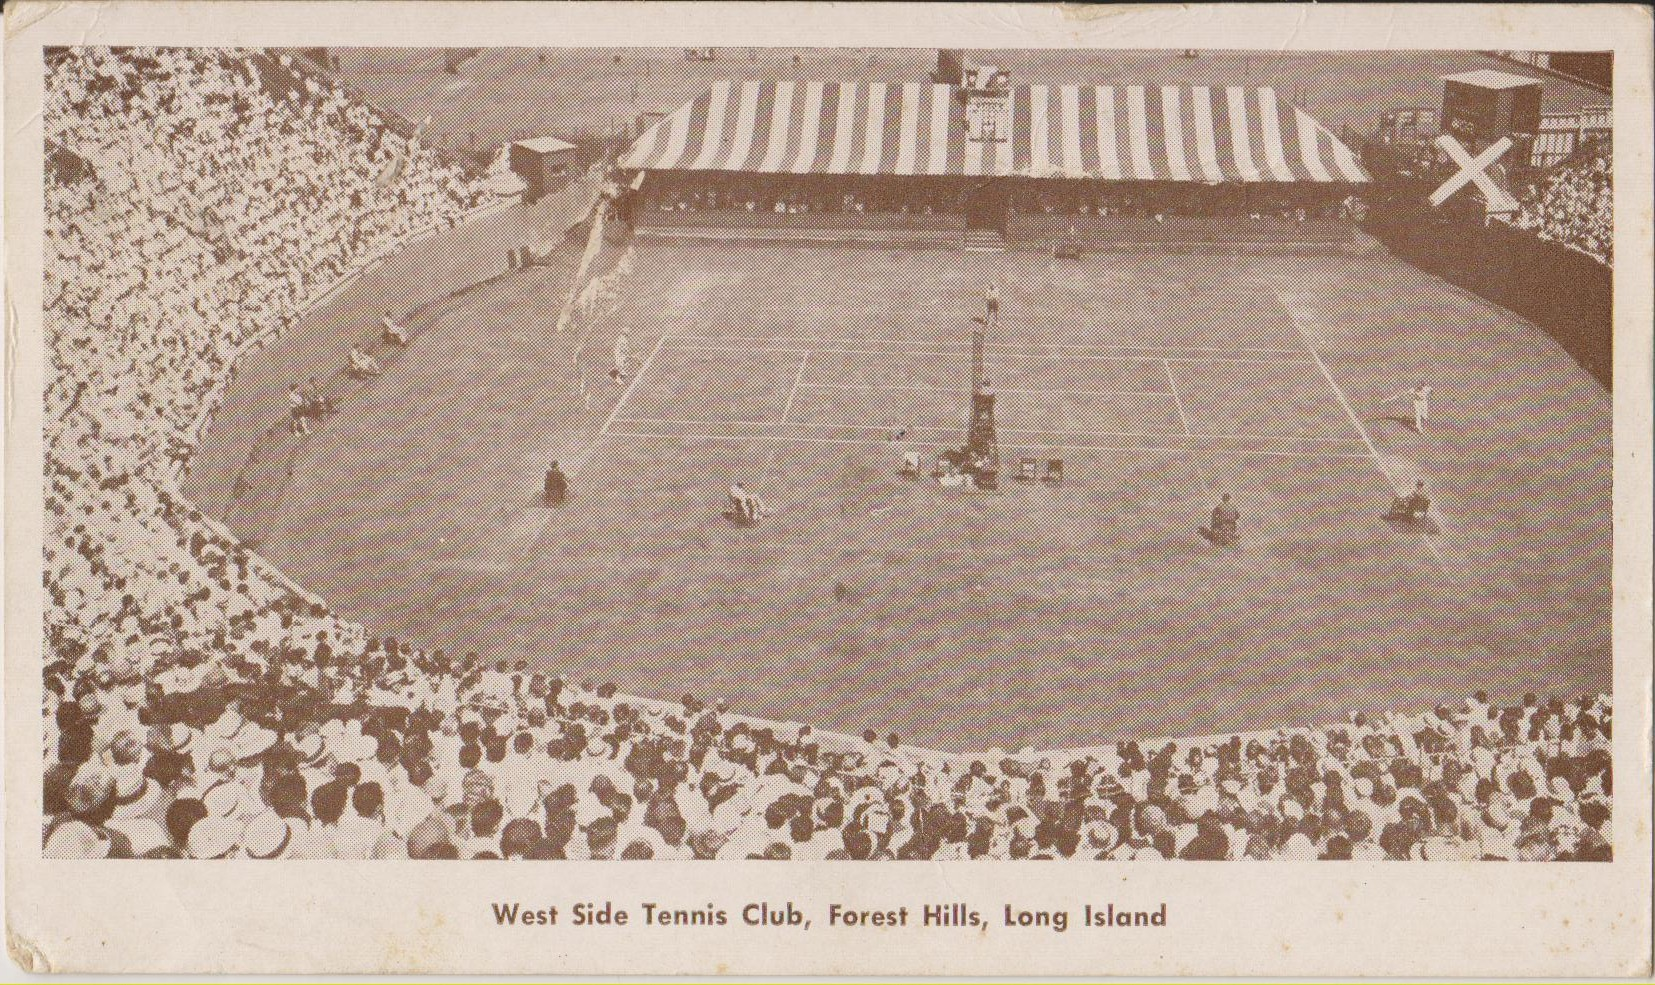 US Open 1948- My Dad's blog post